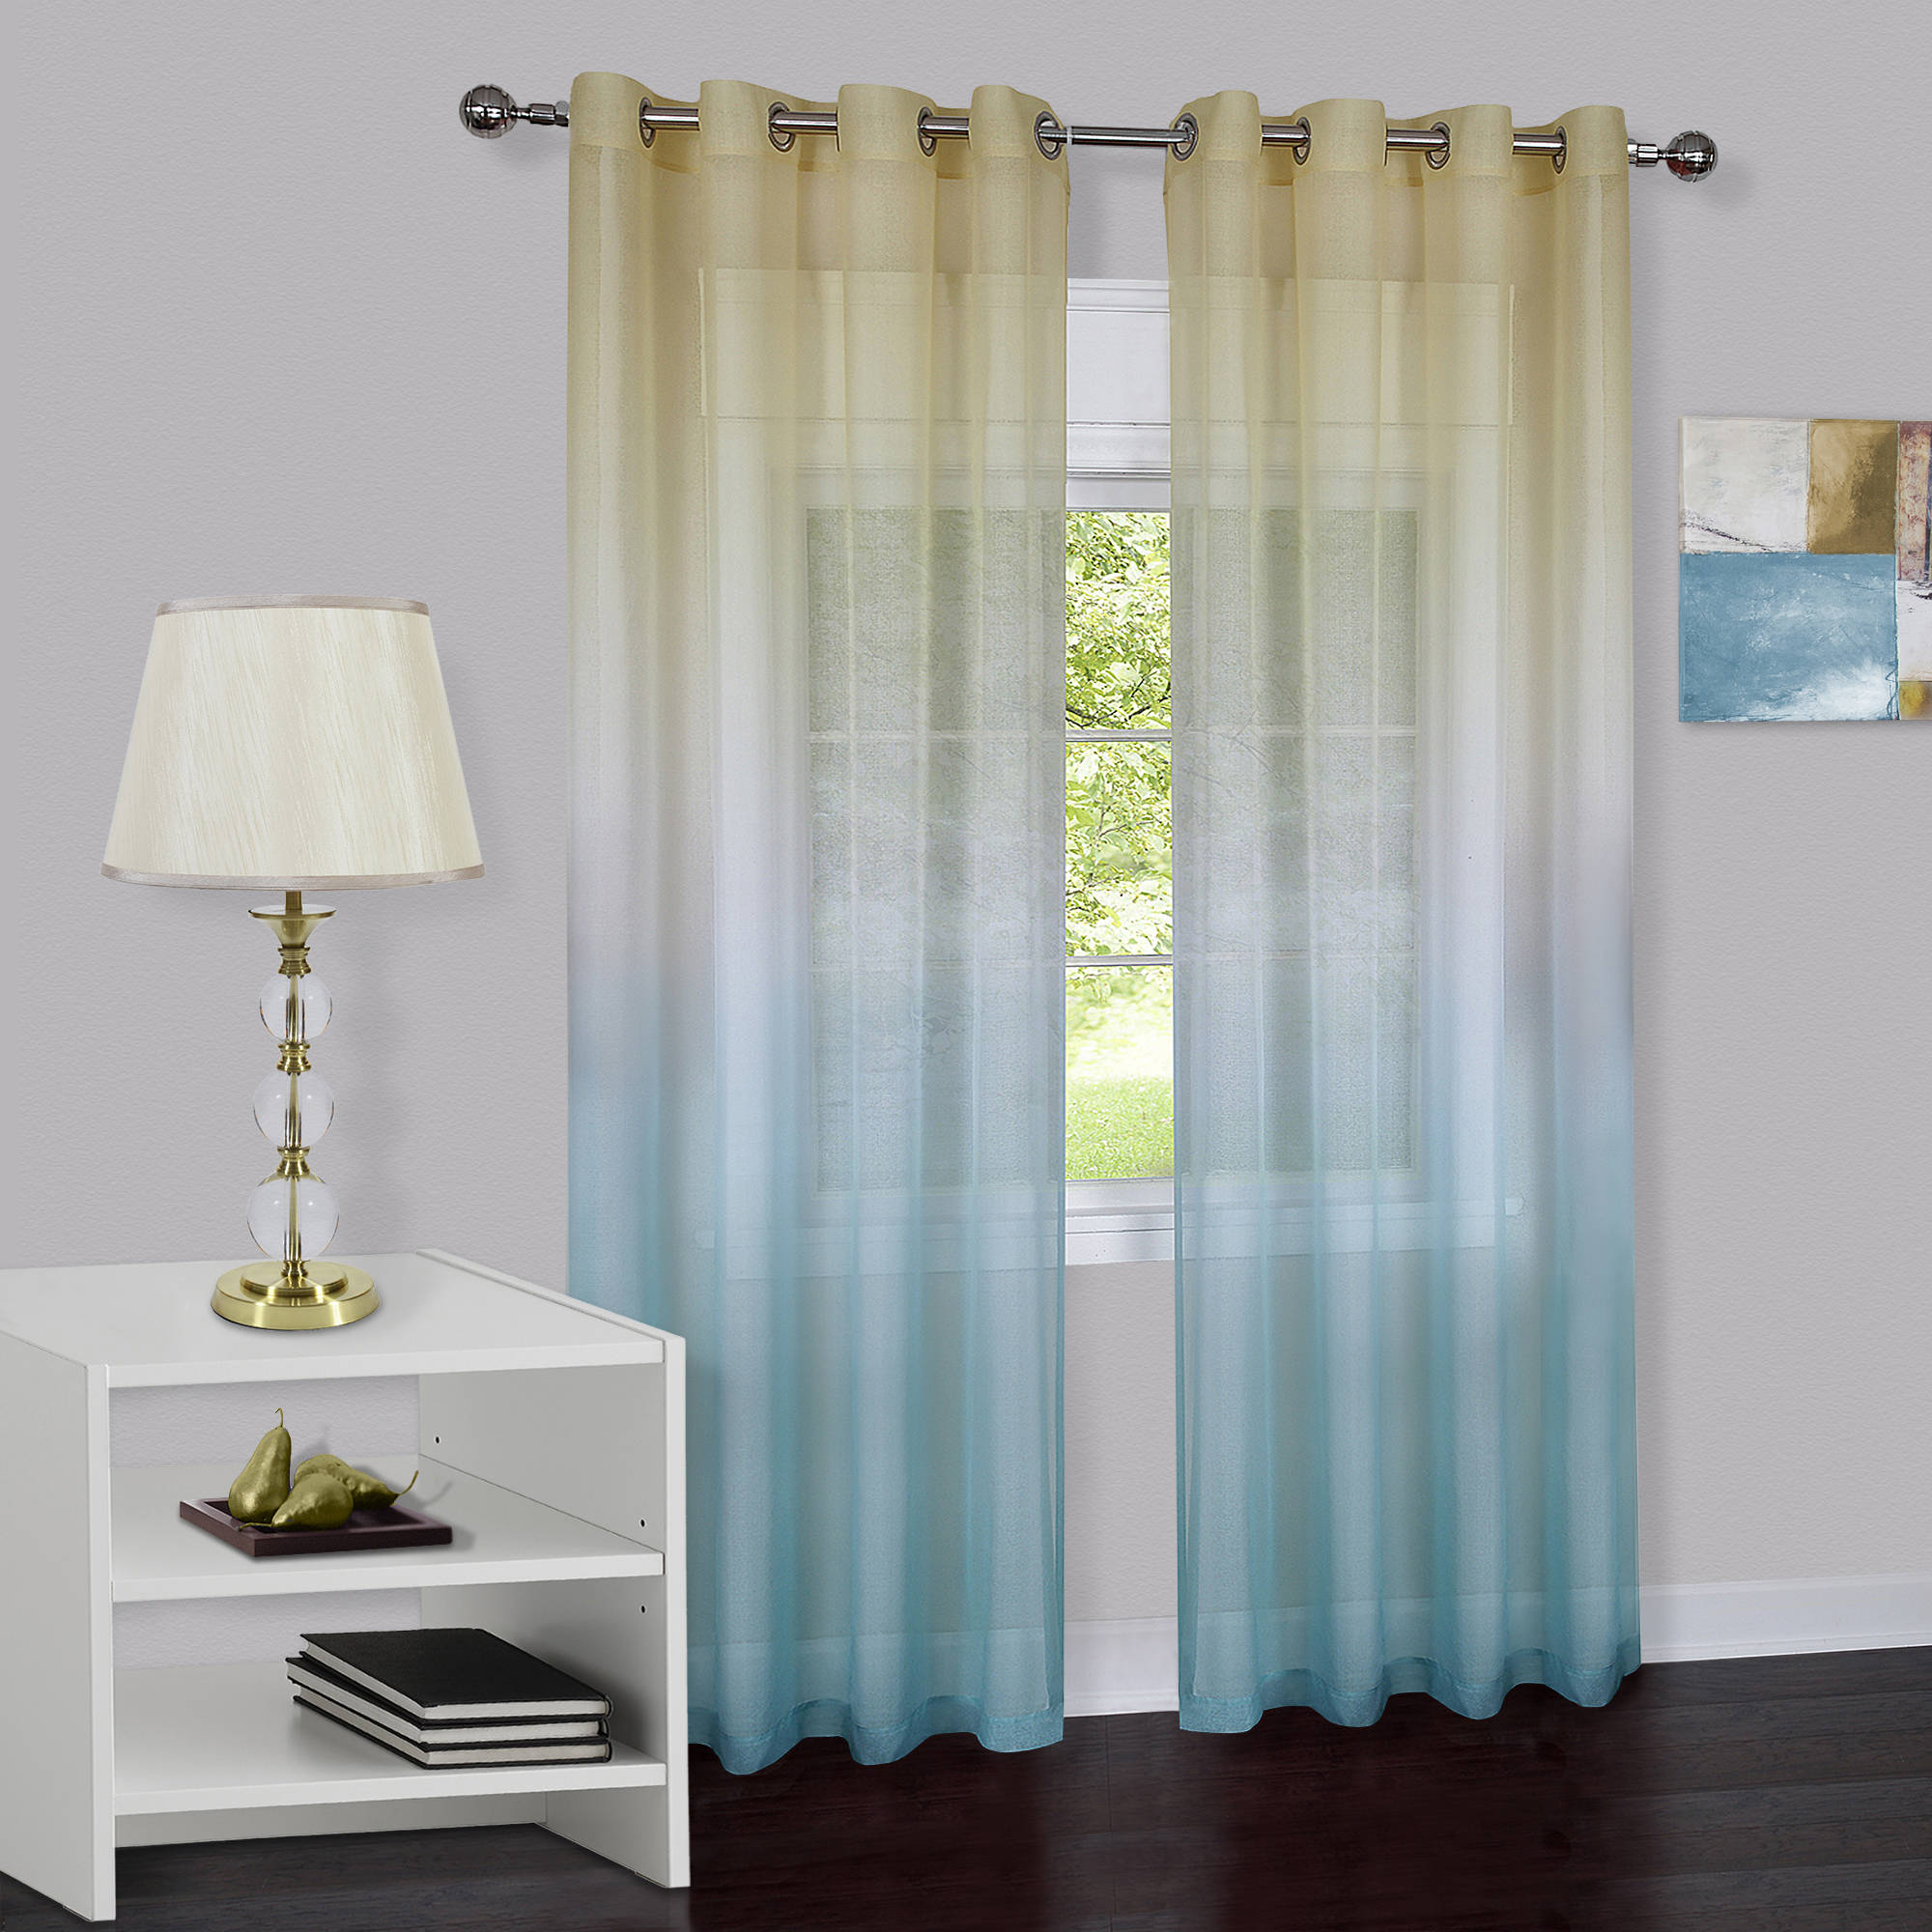 Short Bedroom Curtains Curtains Window Treatments Walmartcom